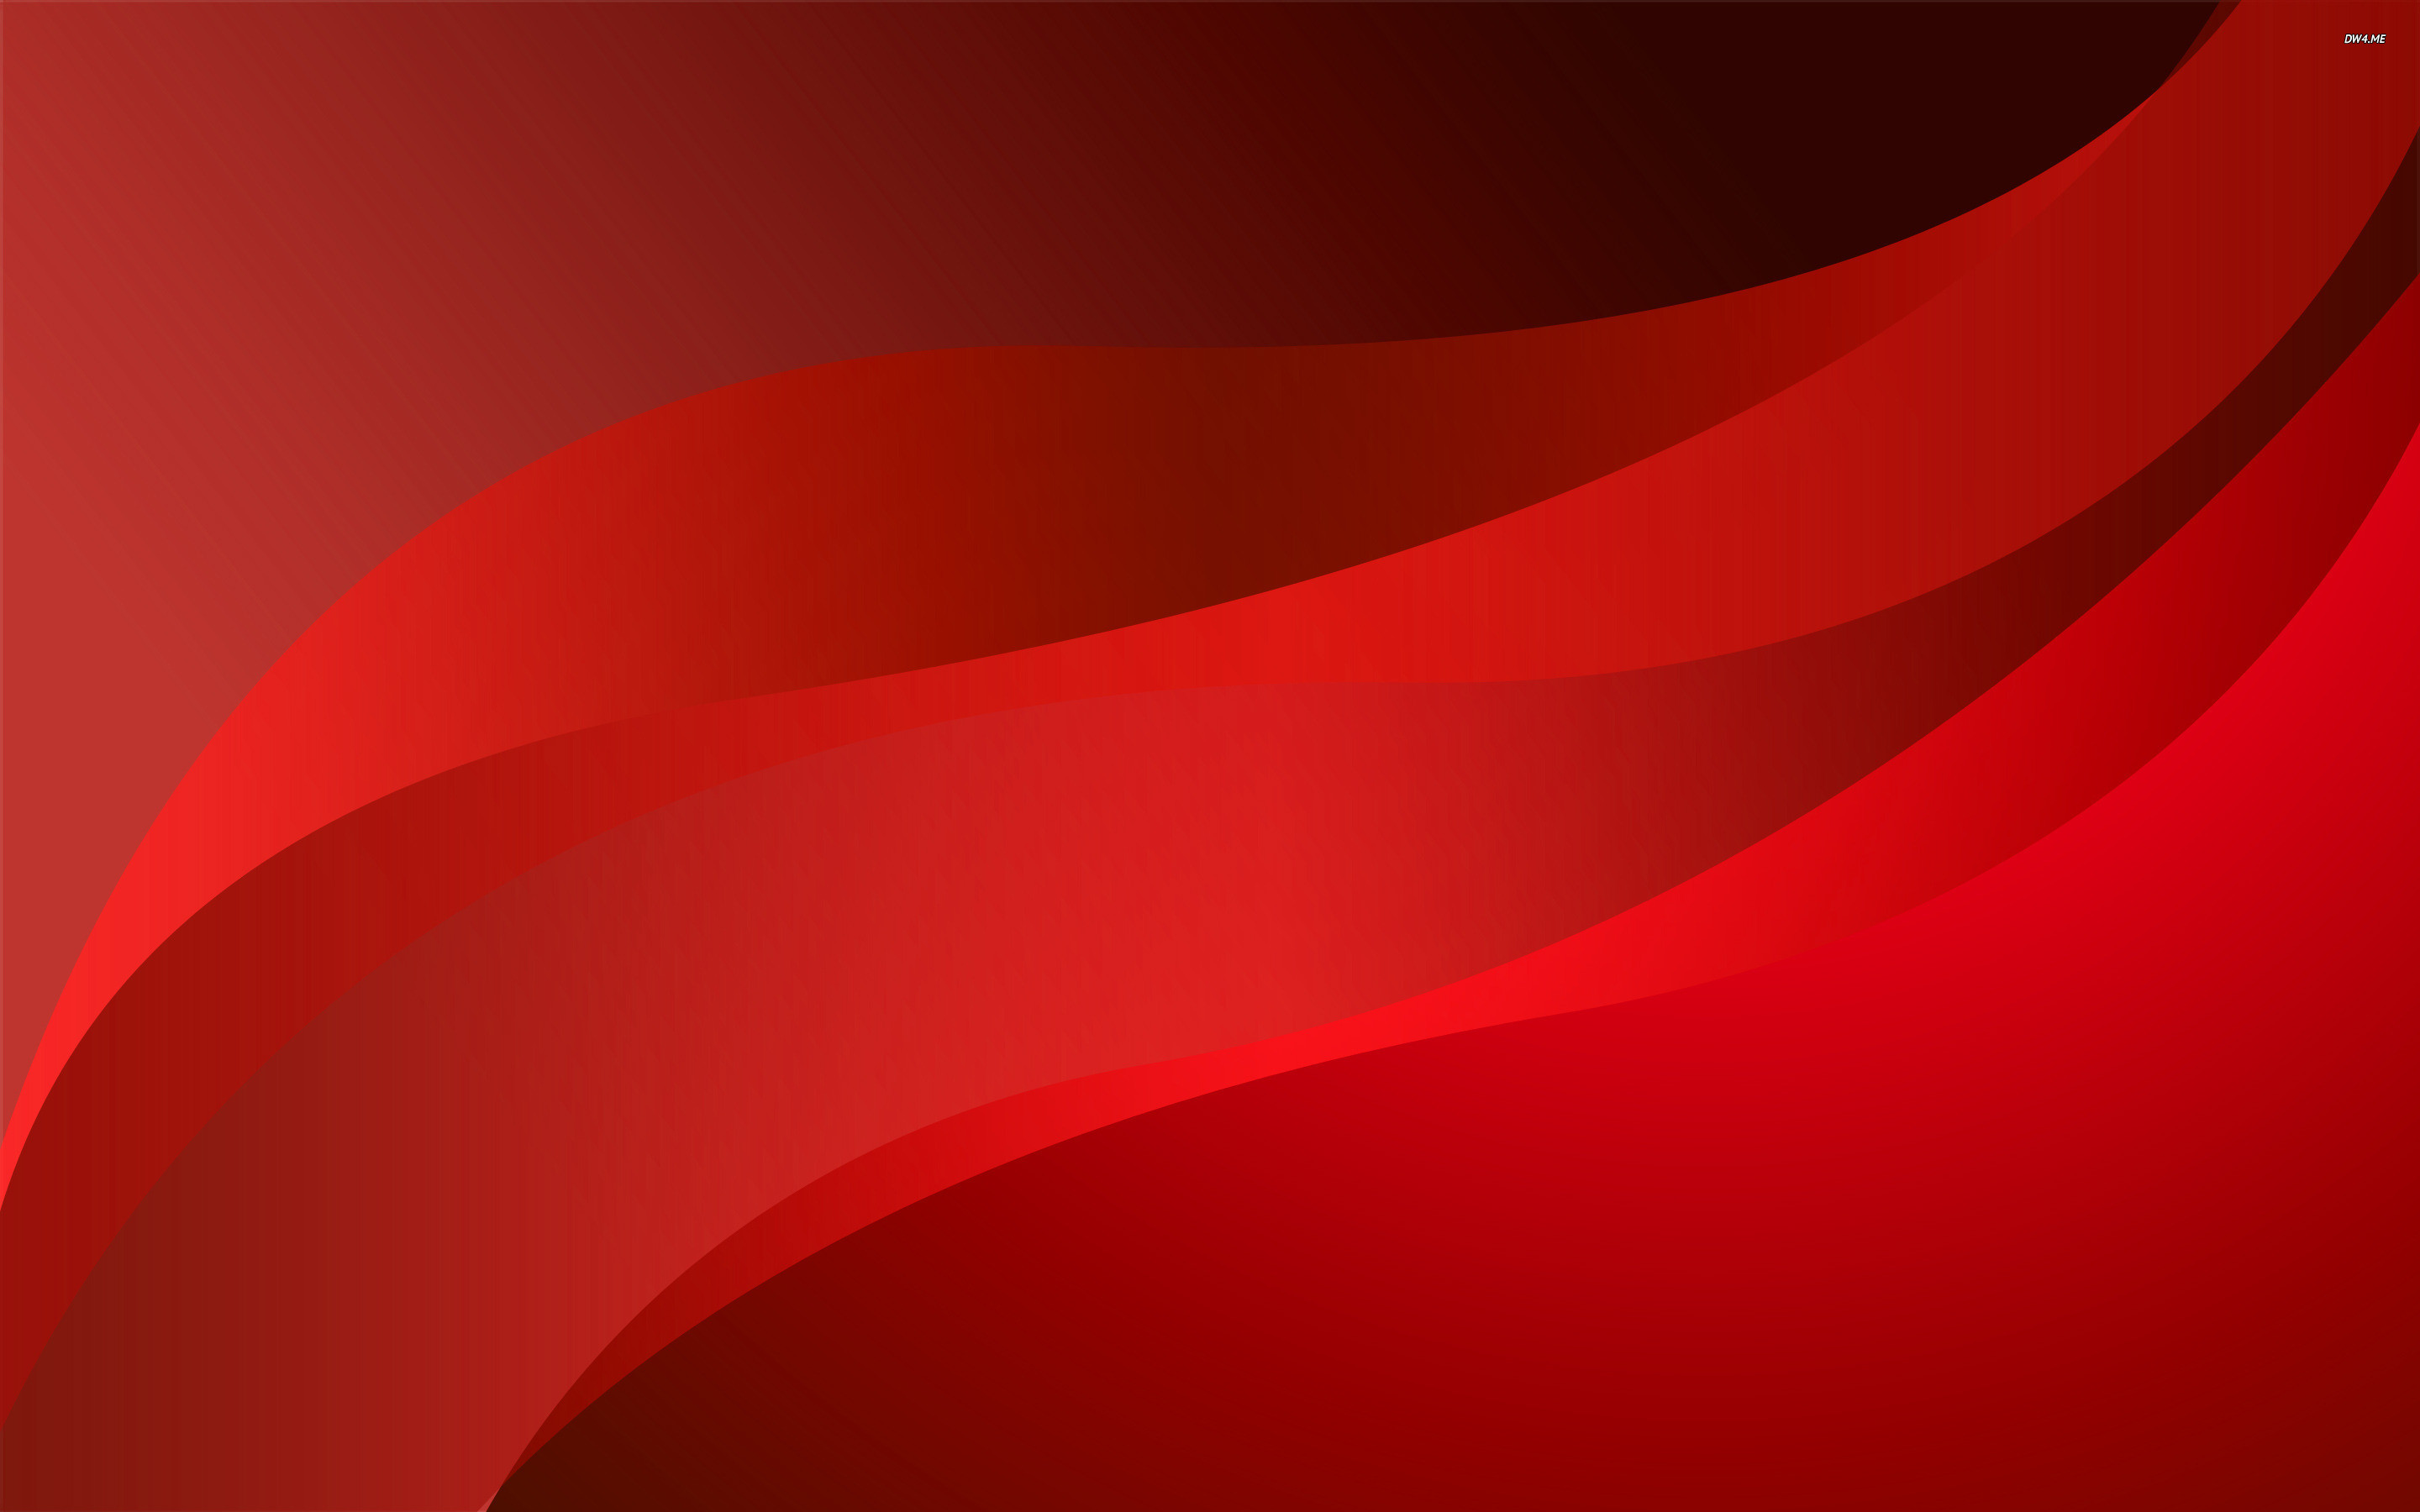 2880x1800 red curves abstract wallpaper | HD Wallpaper, Backgrounds, Tumblr .